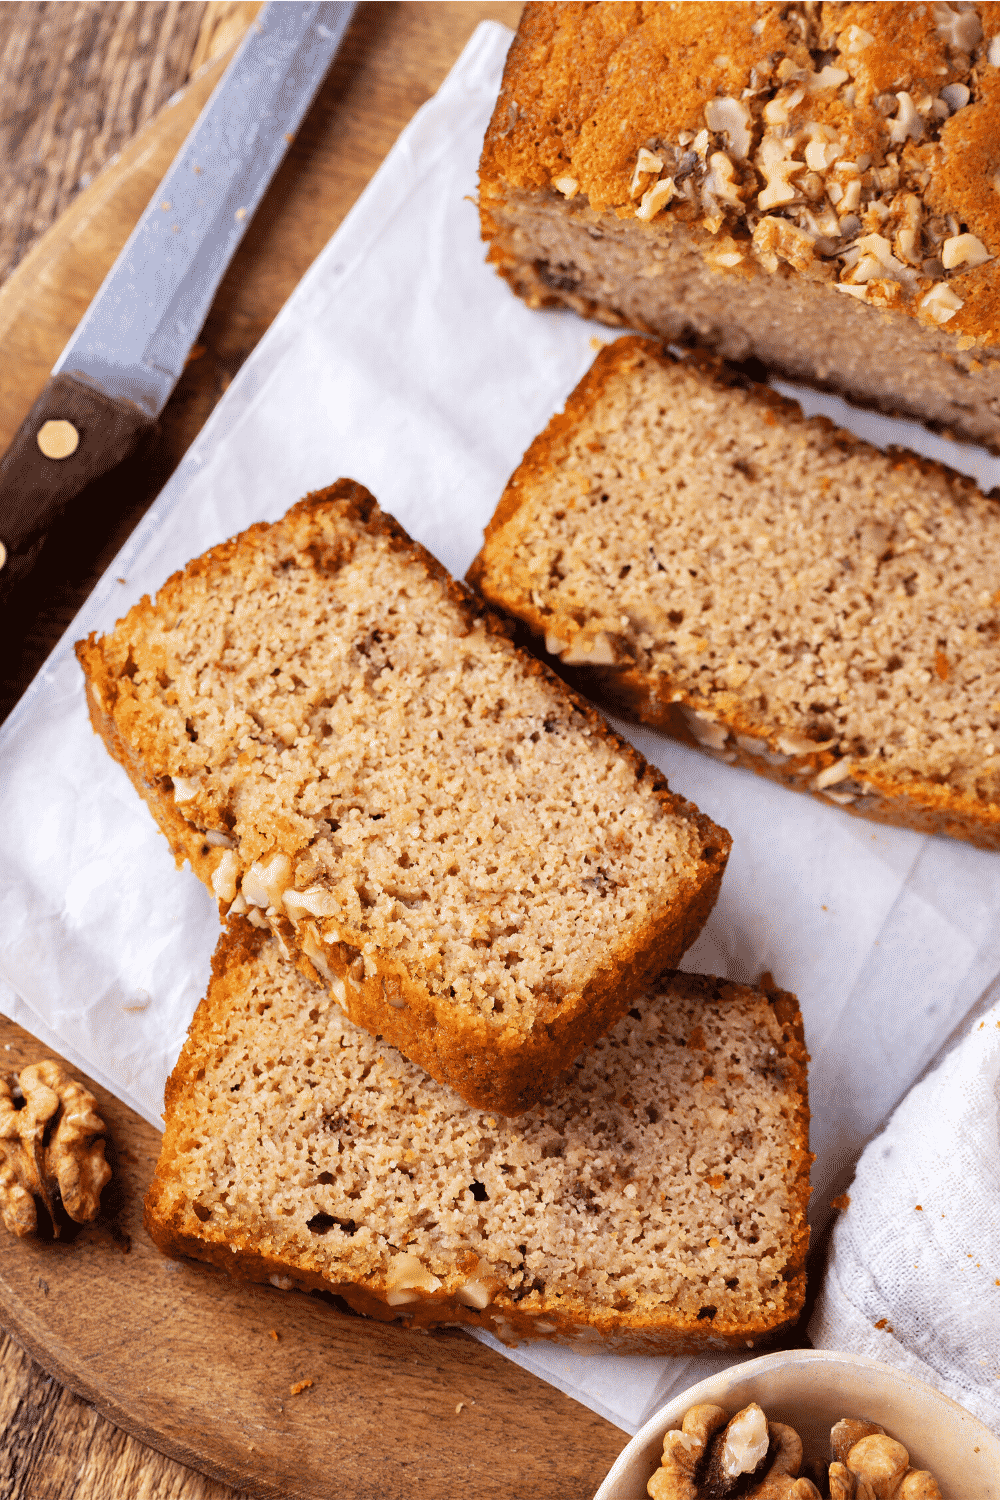 Three slices of banana bread on a piece of white parchment paper on a wooden cutting board.